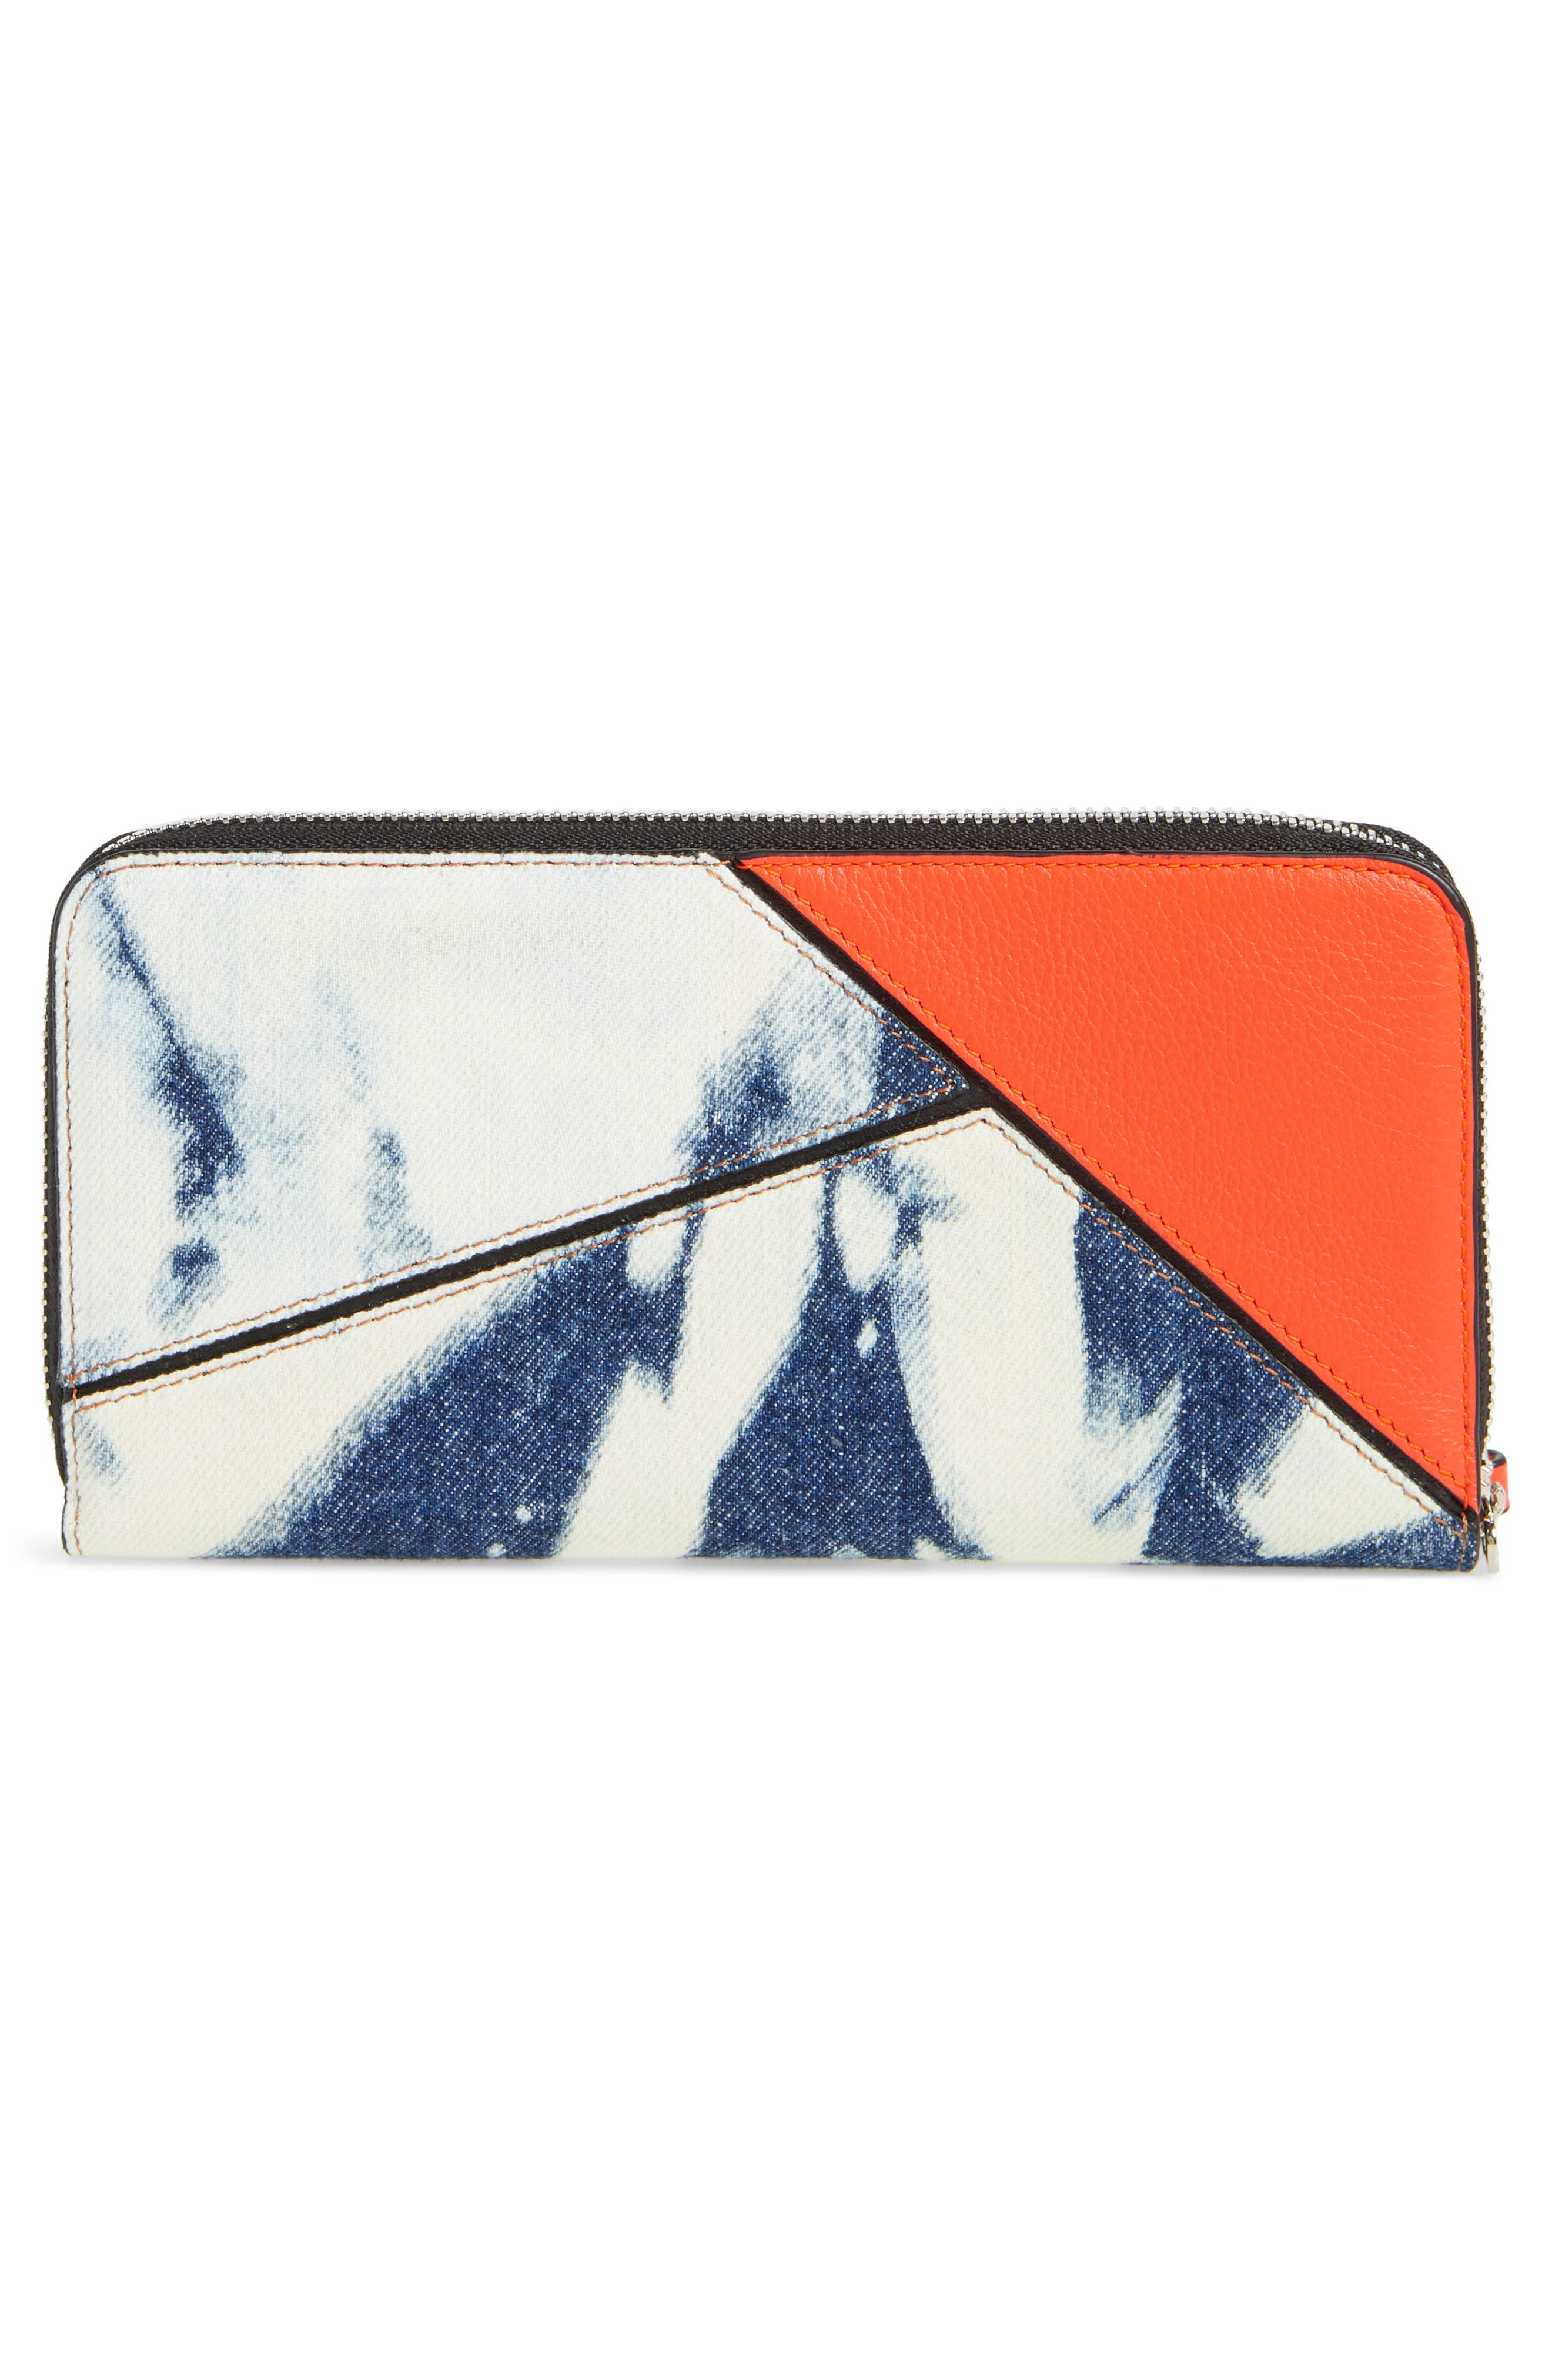 Denim Puzzle Zip Around Leather Wallet,                             Alternate thumbnail 3, color,                             492